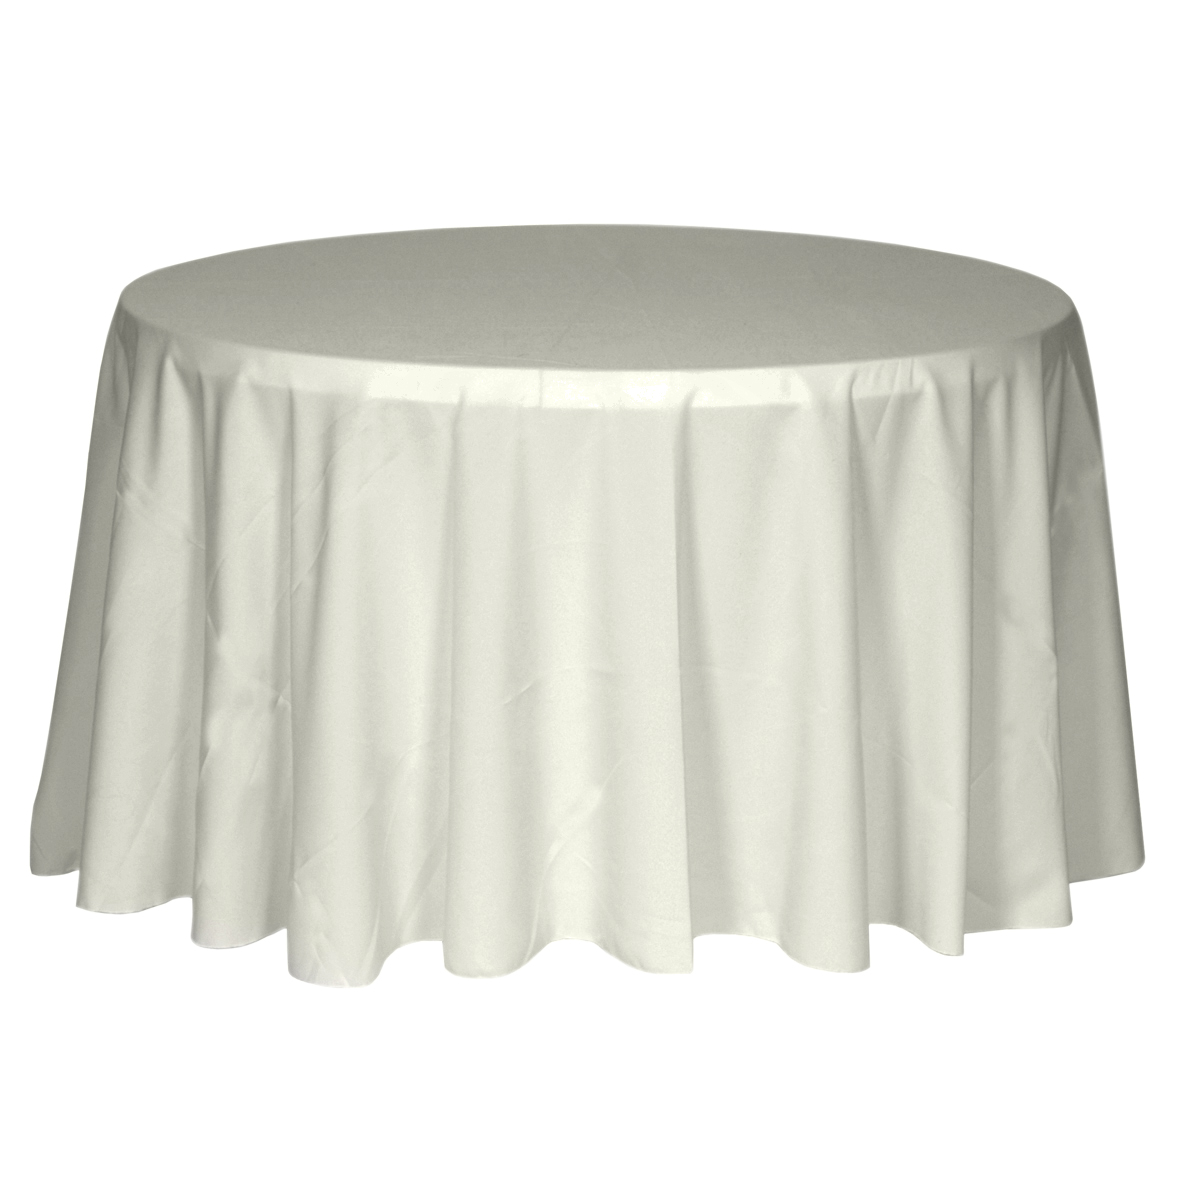 round-tablecloth.jpg